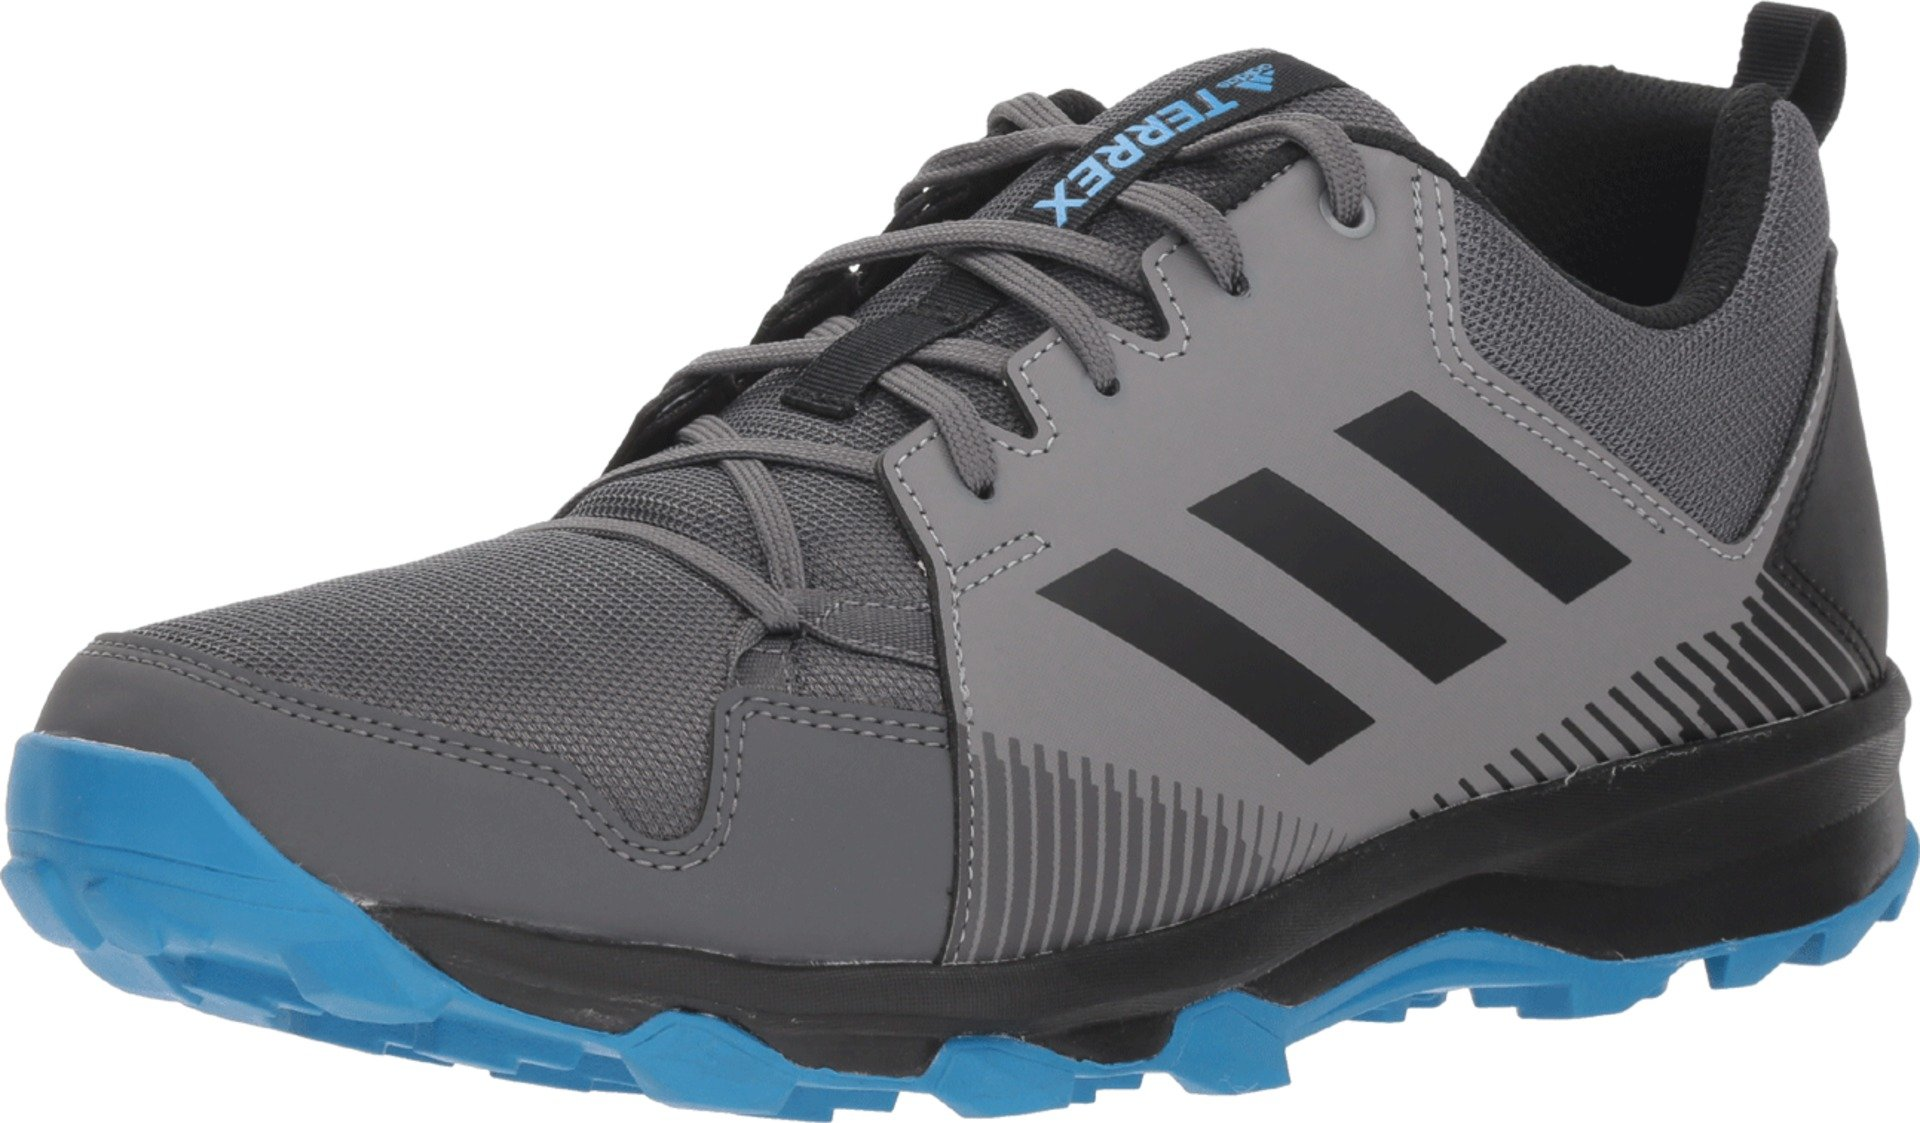 adidas outdoor  Men's Terrex Tracerocker Grey Five/Black/Bright Blue 10.5 D US by adidas outdoor